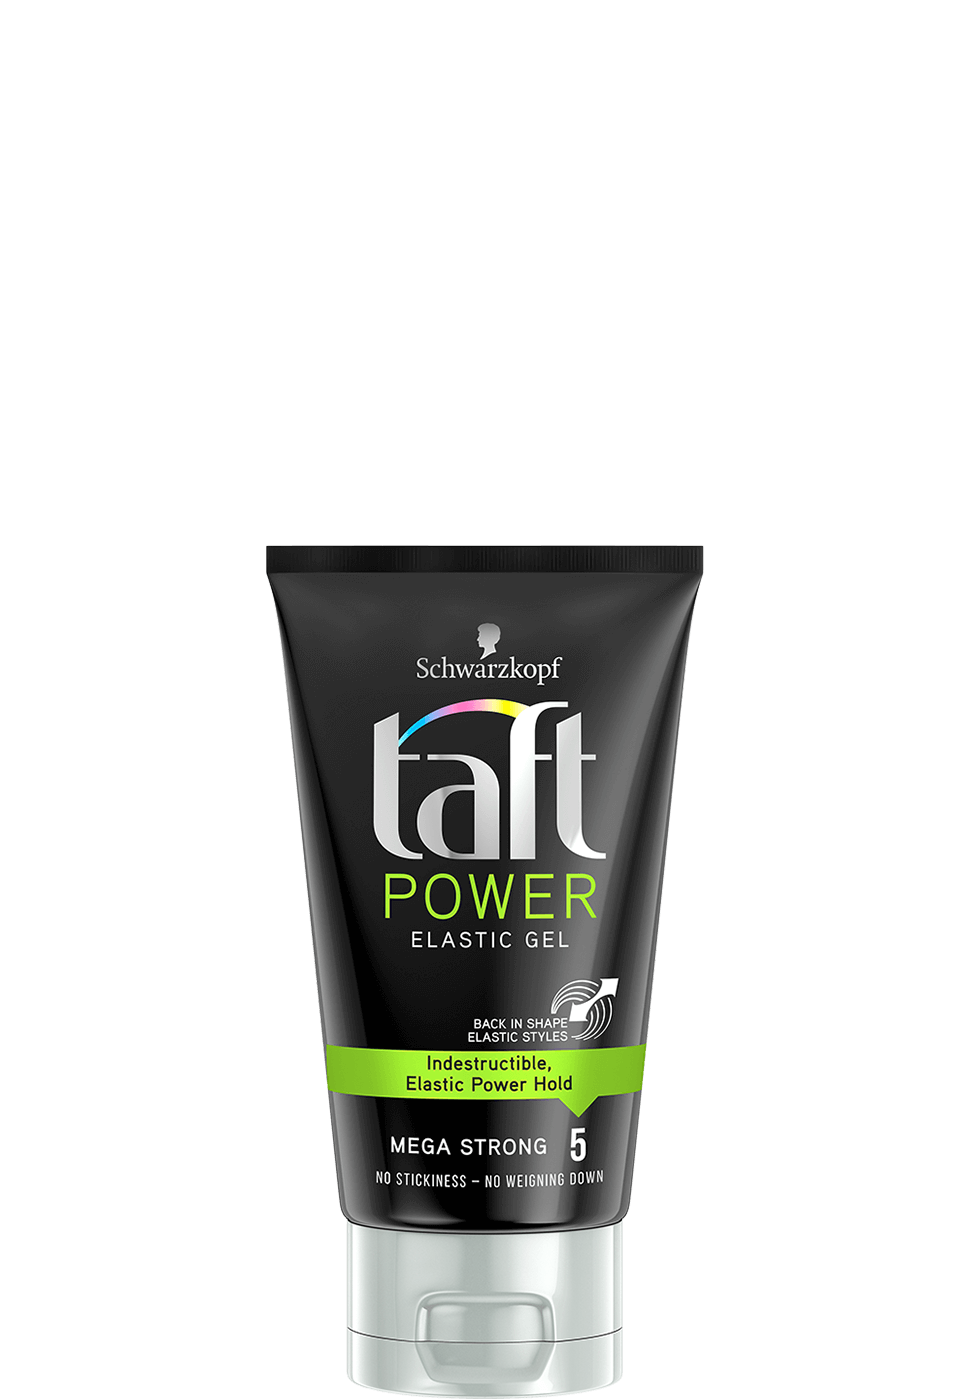 taft_com_power_elastic_gel_970x1400